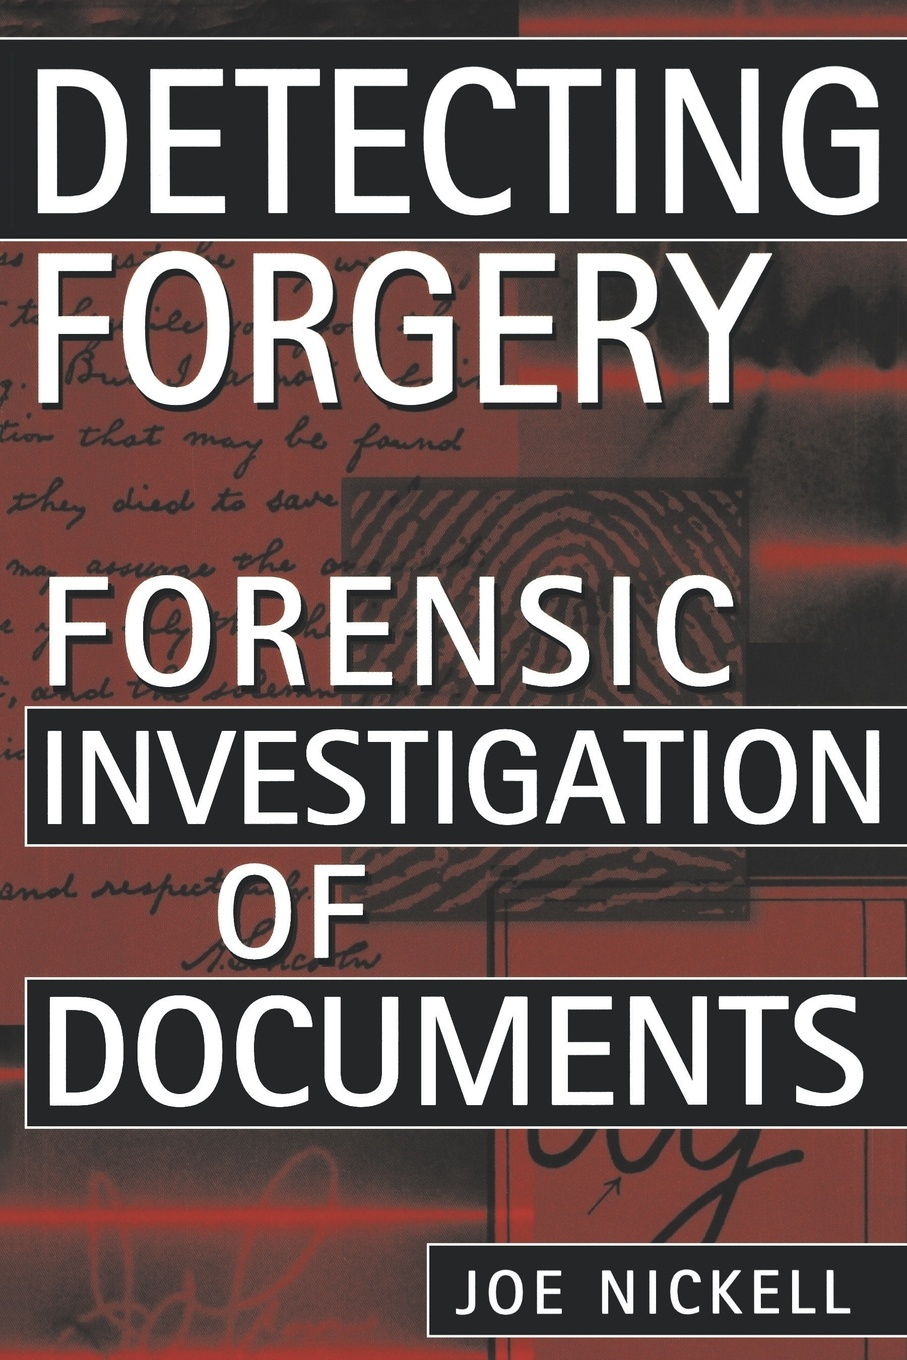 Joe Nickell Detecting Forgery. Forensic Investigation of Documents